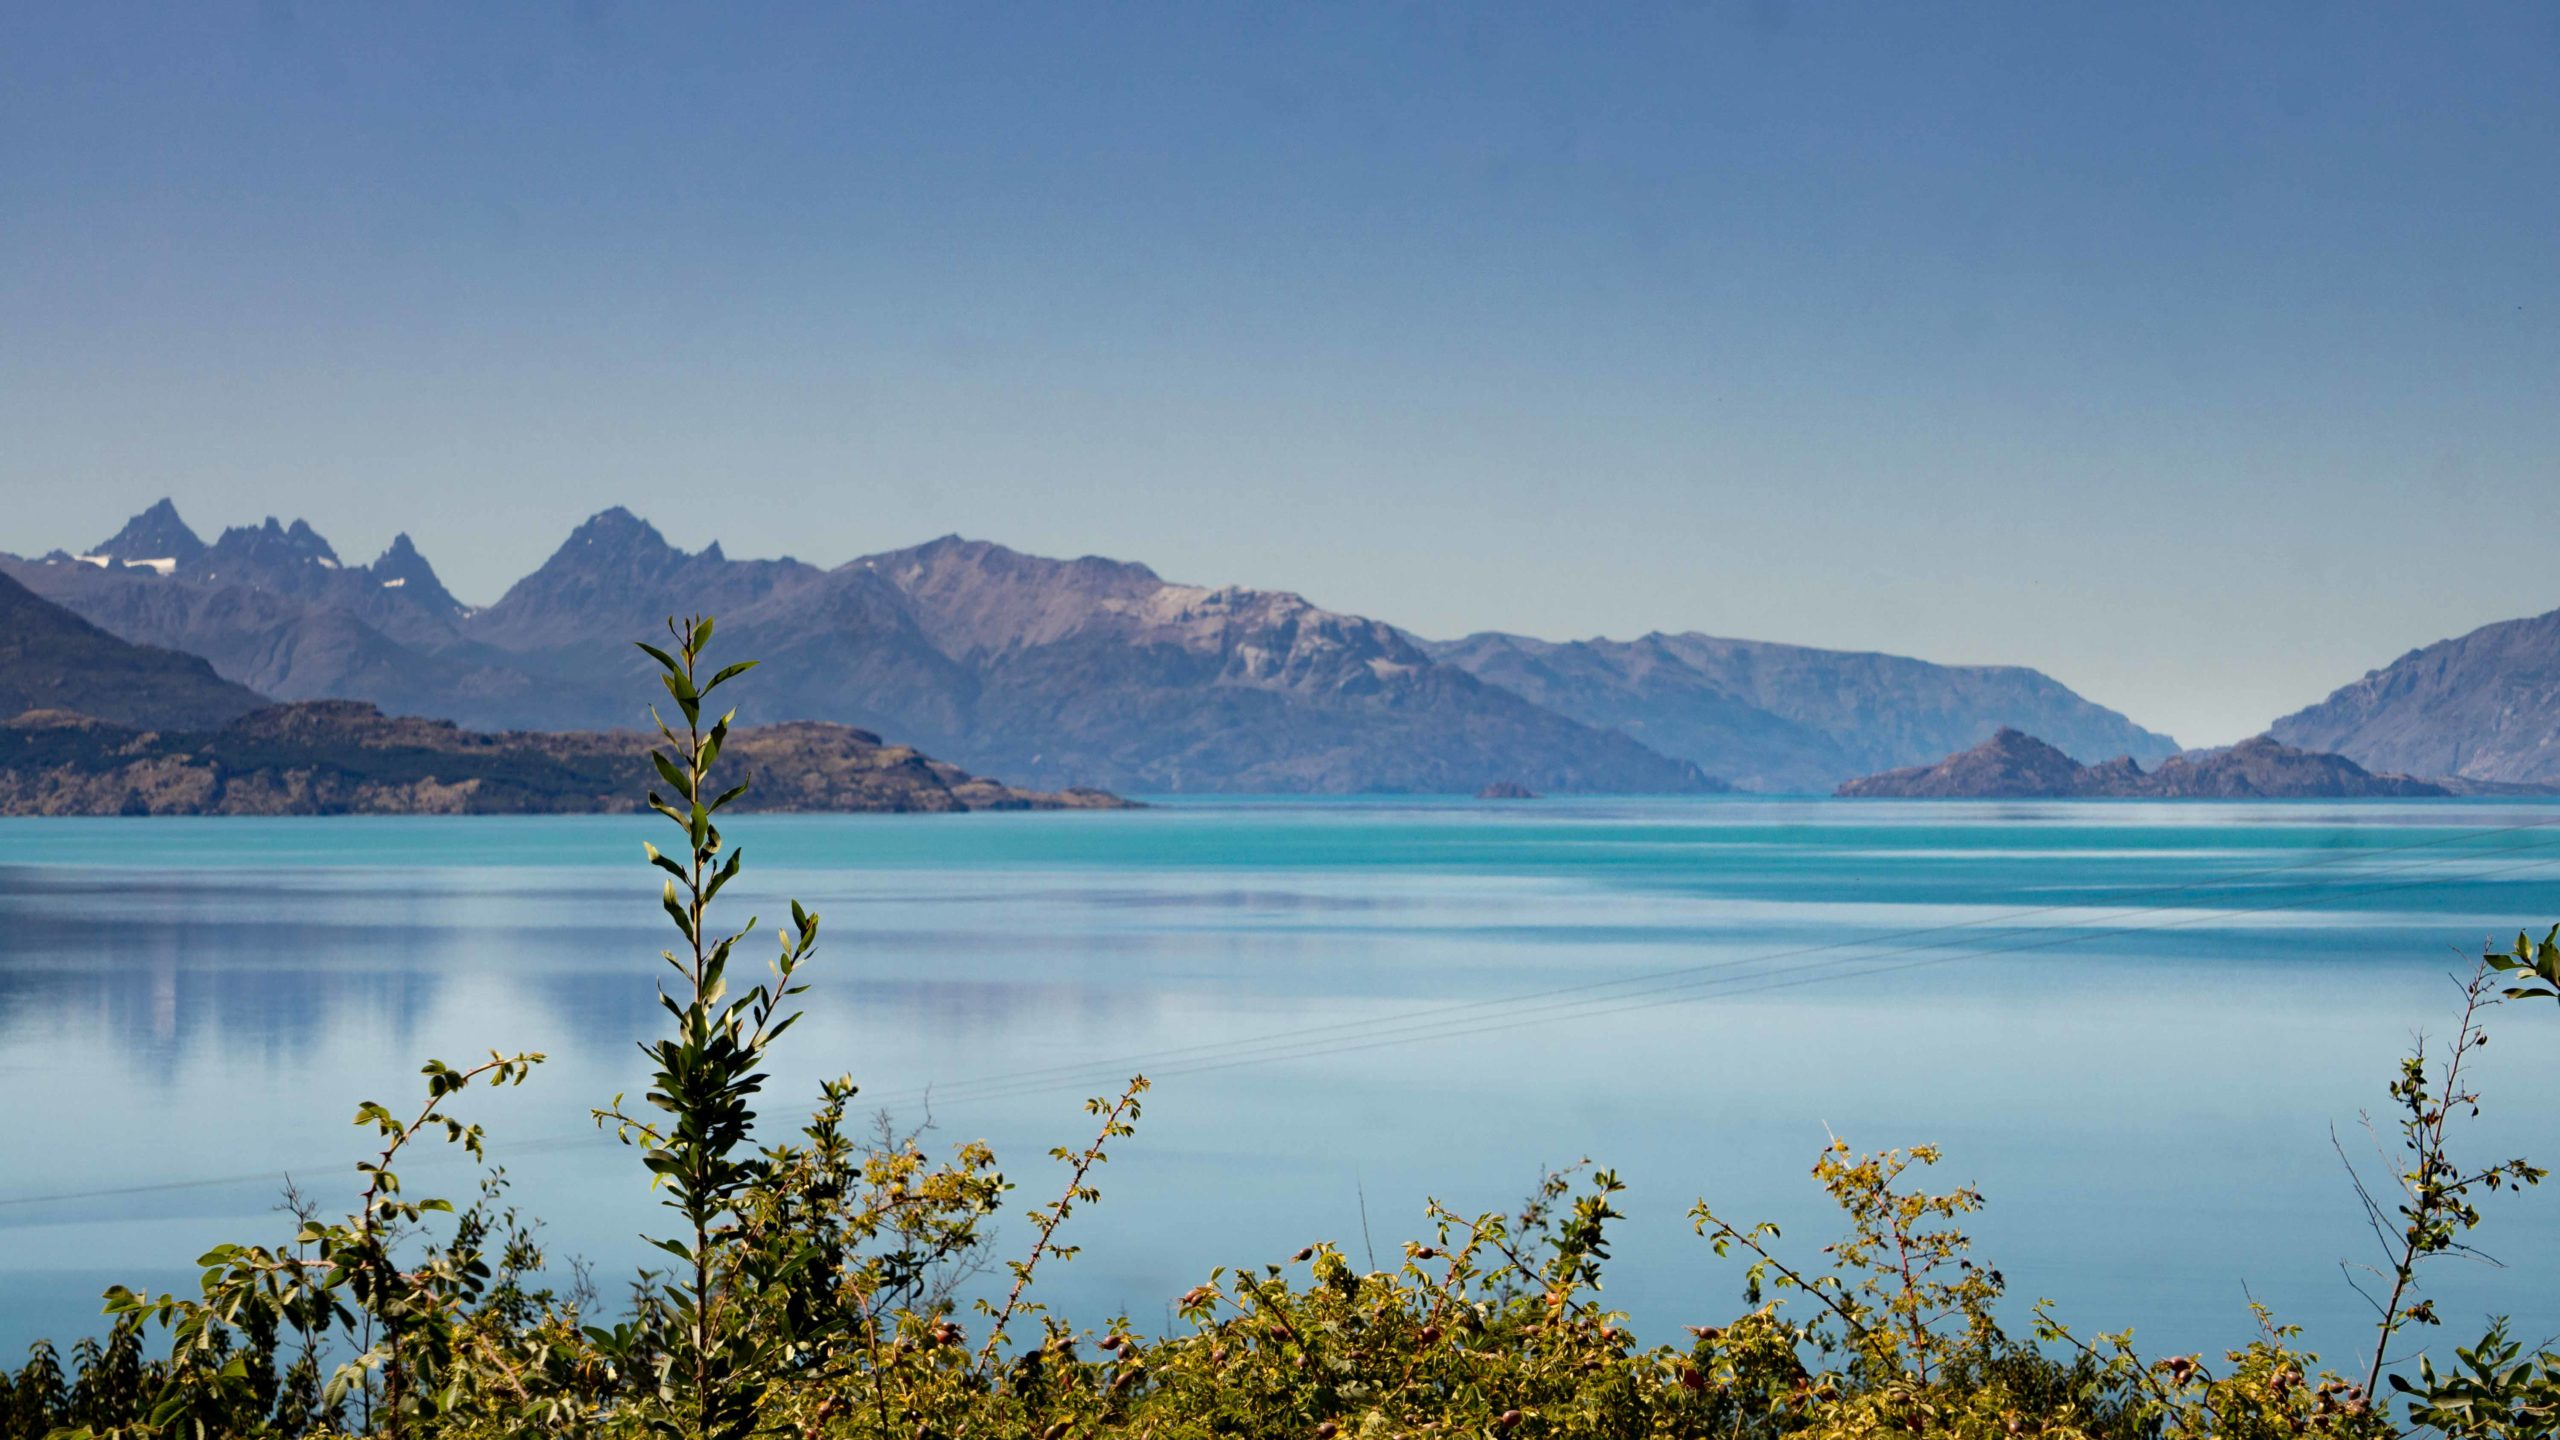 Cycle the Carretera Austral | The famous road through the heart of Chilean Patagonia 1